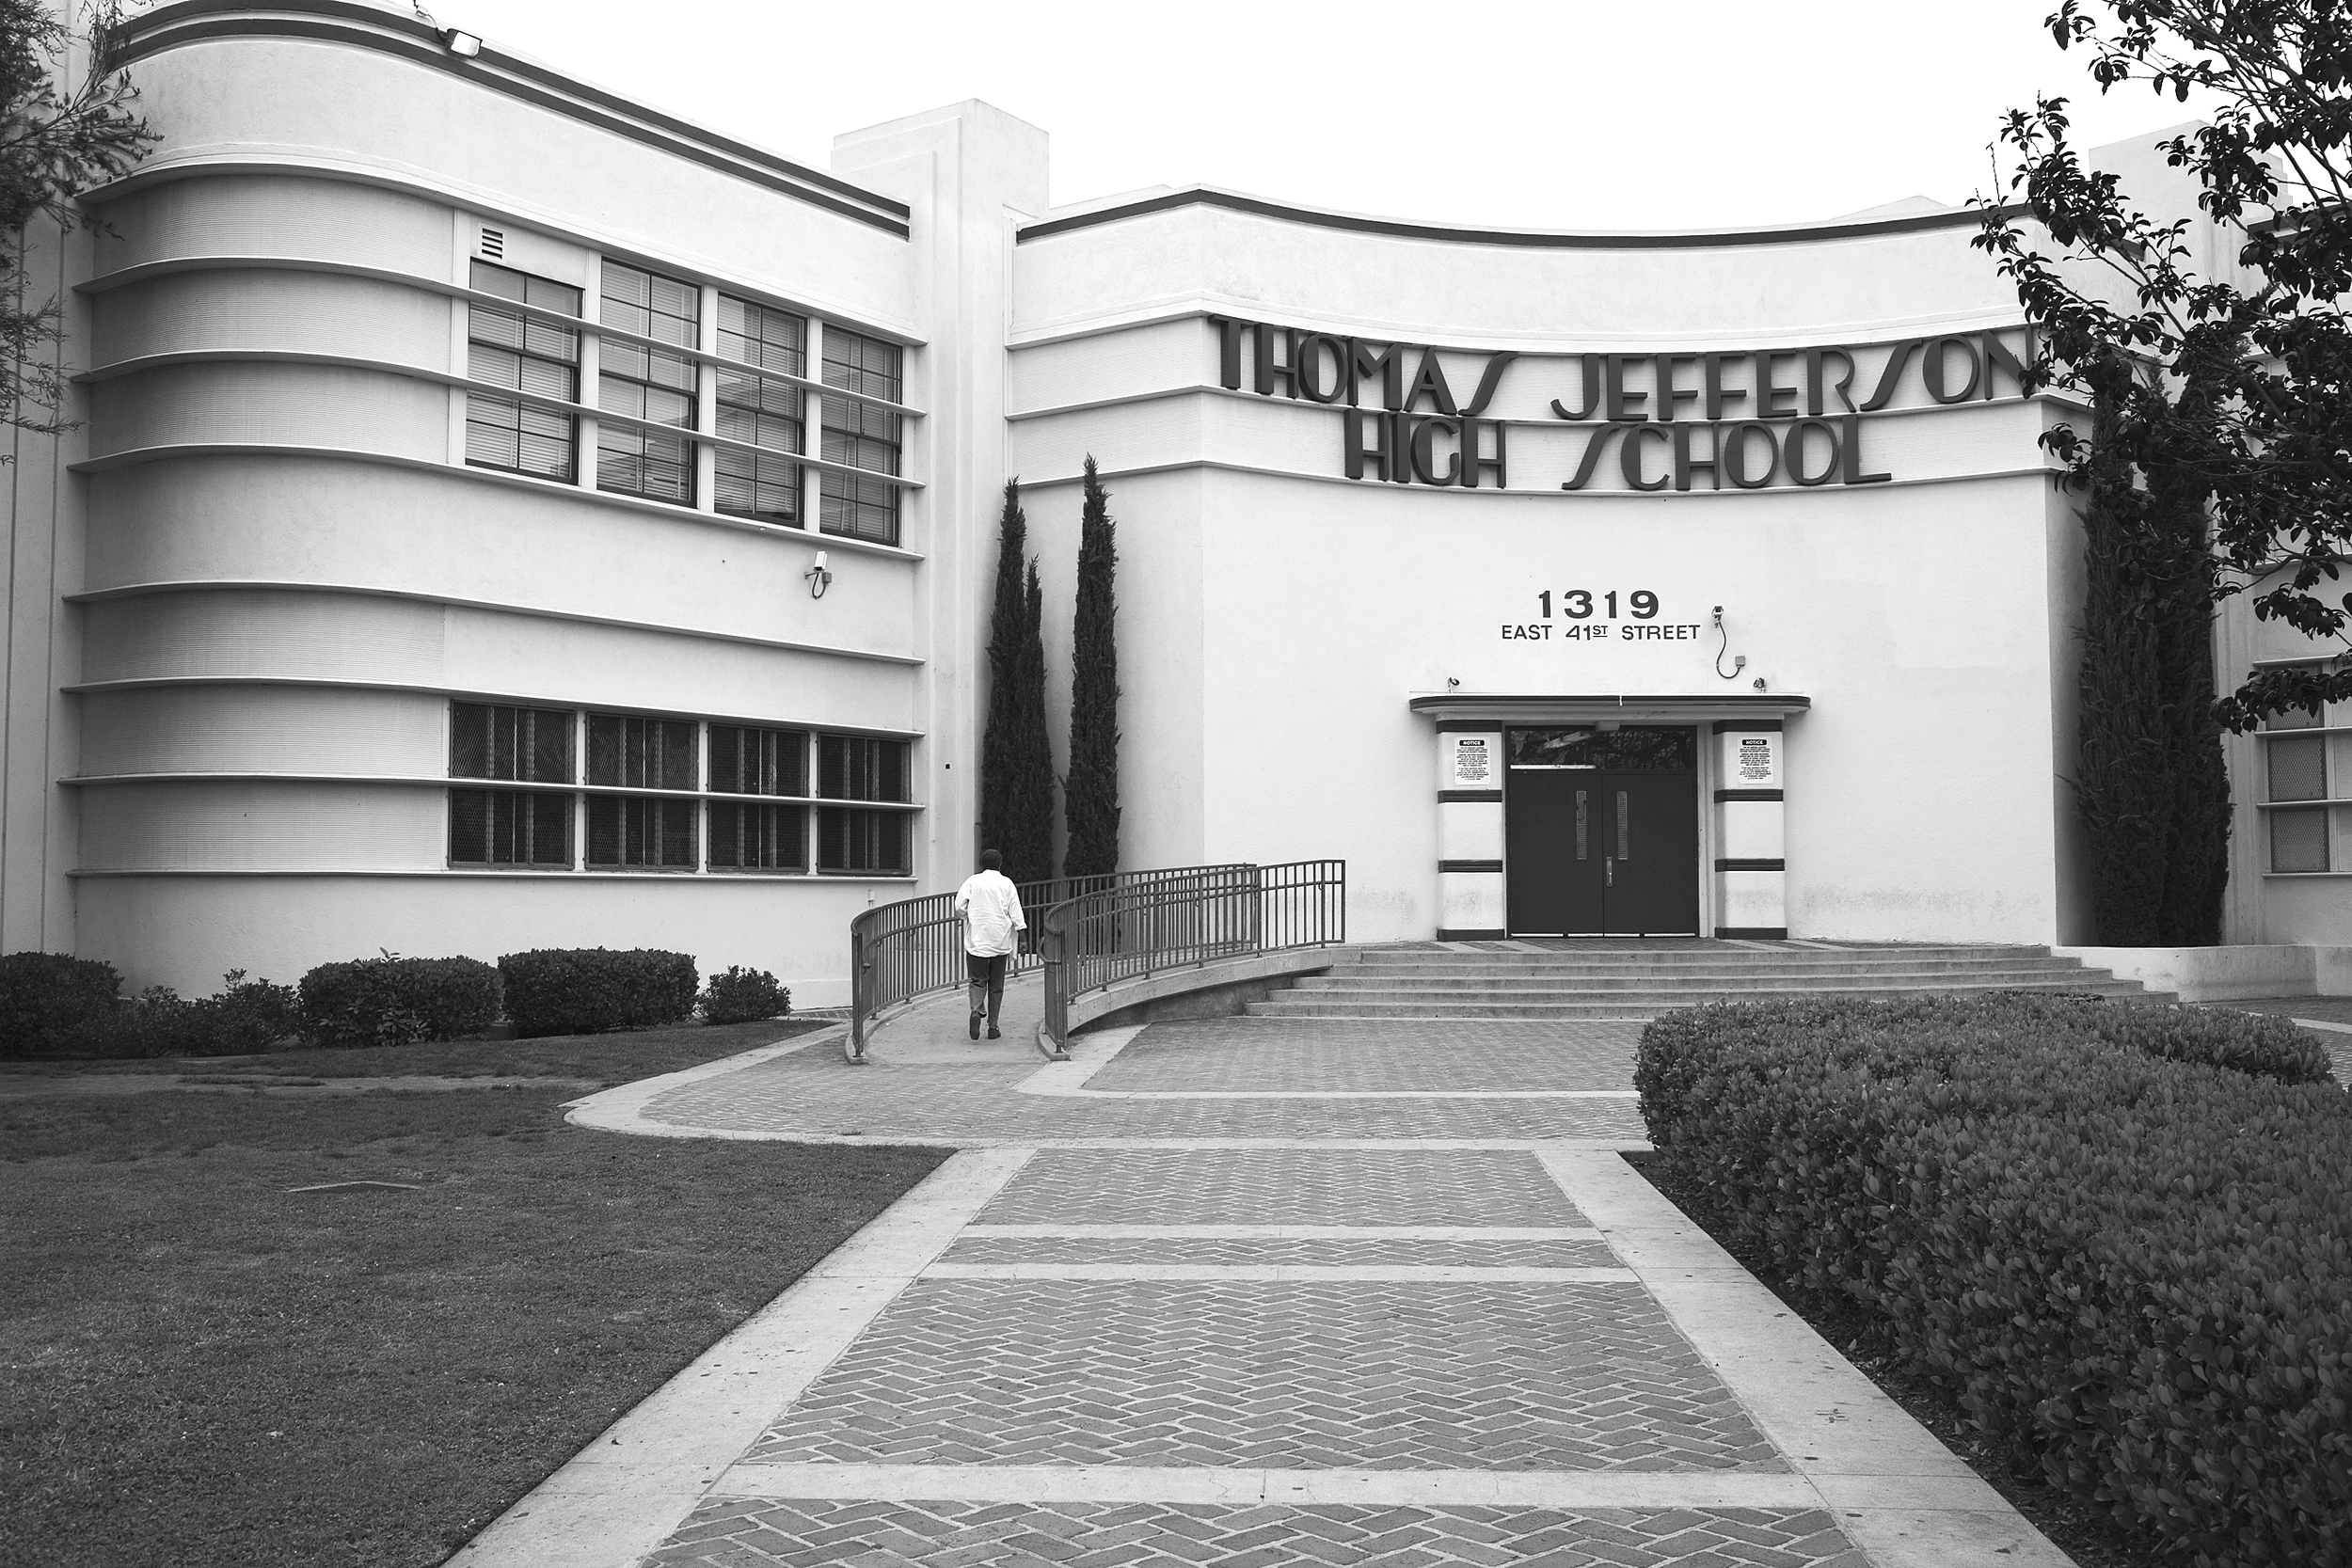 """Thomas Jefferson High School, South Los Angeles. Jefferson is now a predominantly Latina/o school and has frequently been a site of sensationalized media coverage of Black-Latina/o student conflict. 2009.                                  0     false             18 pt     18 pt     0     0         false     false     false                                                     /* Style Definitions */ table.MsoNormalTable {mso-style-name:""""Table Normal""""; mso-tstyle-rowband-size:0; mso-tstyle-colband-size:0; mso-style-noshow:yes; mso-style-parent:""""""""; mso-padding-alt:0in 5.4pt 0in 5.4pt; mso-para-margin:0in; mso-para-margin-bottom:.0001pt; mso-pagination:widow-orphan; font-size:10.0pt; font-family:""""Times New Roman"""";}"""